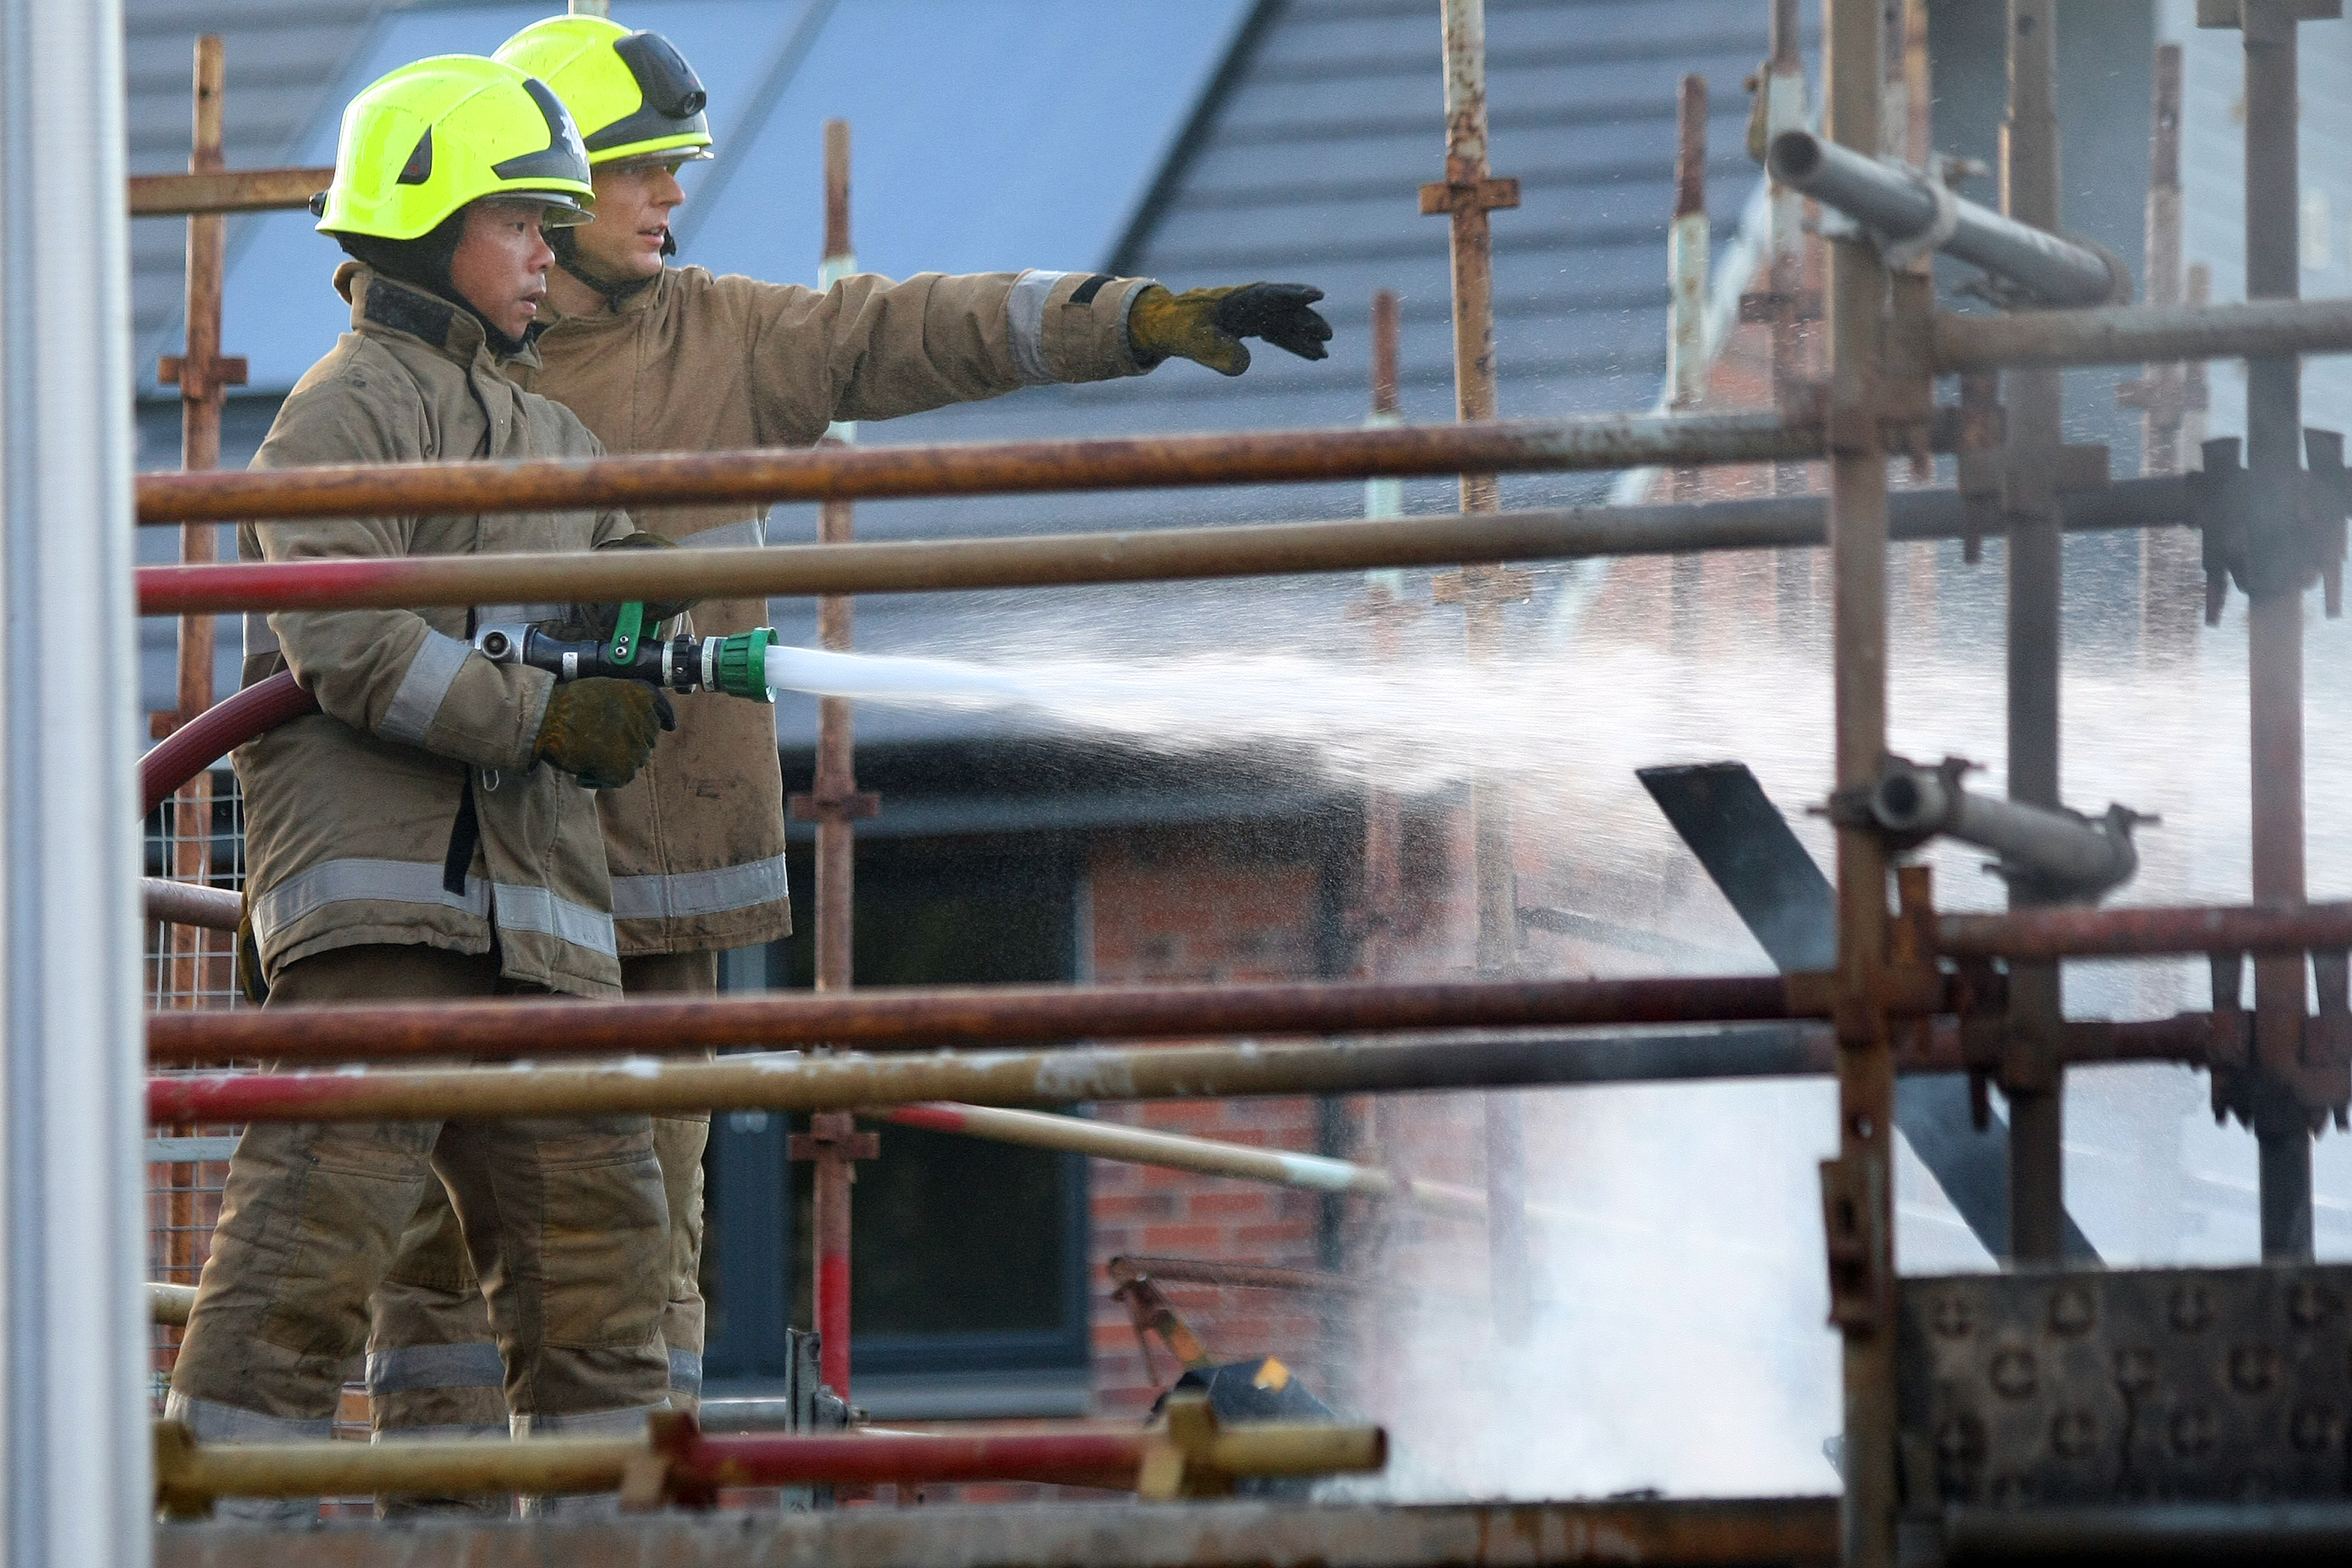 Fire crews at the scene of the blaze on Monday night.